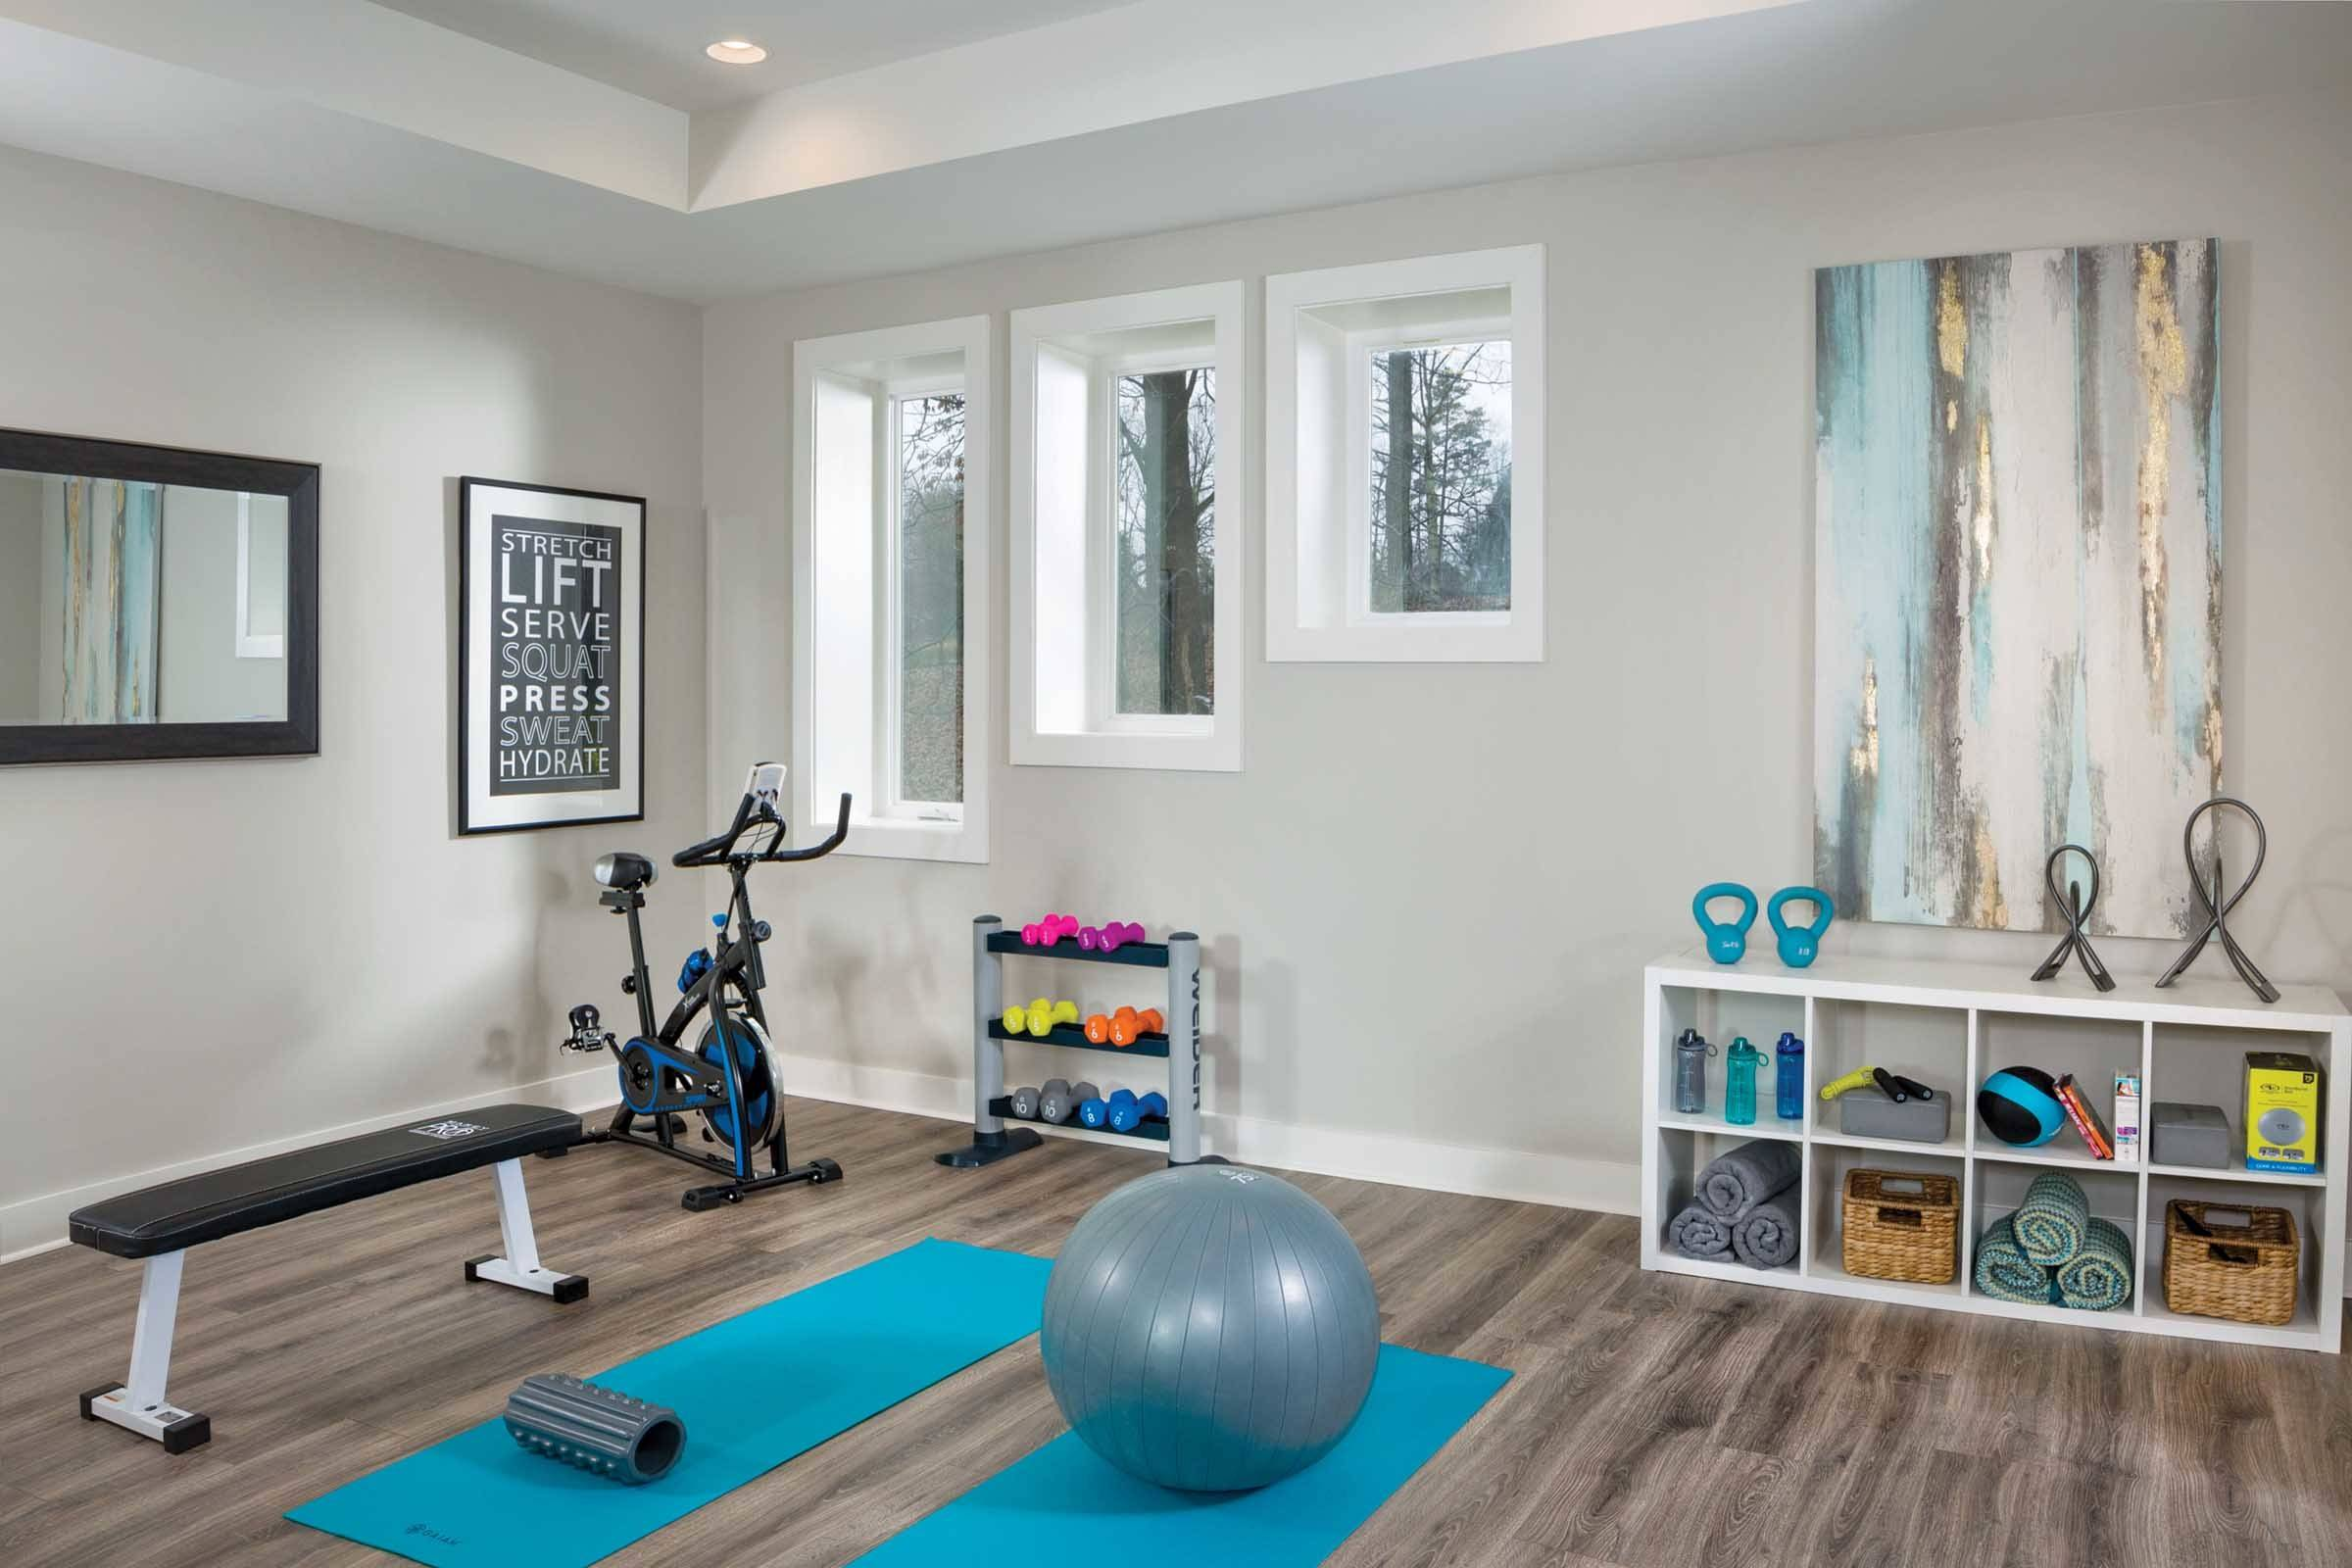 75 Beautiful Home Gym Pictures Ideas December 2020 Houzz